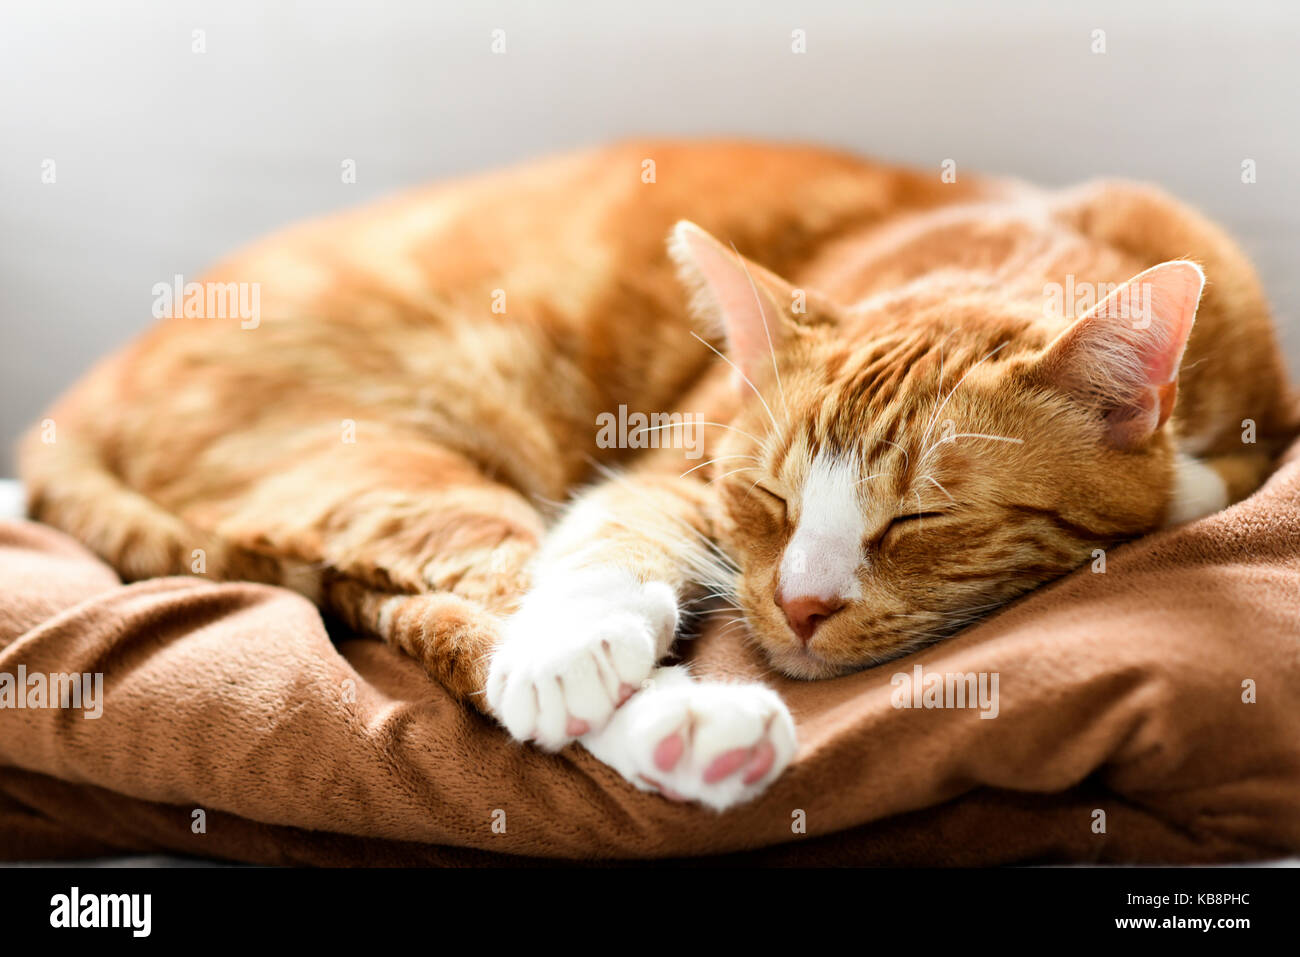 A young cat sleeping on a couch at home, sweet and beautiful. Stock Photo